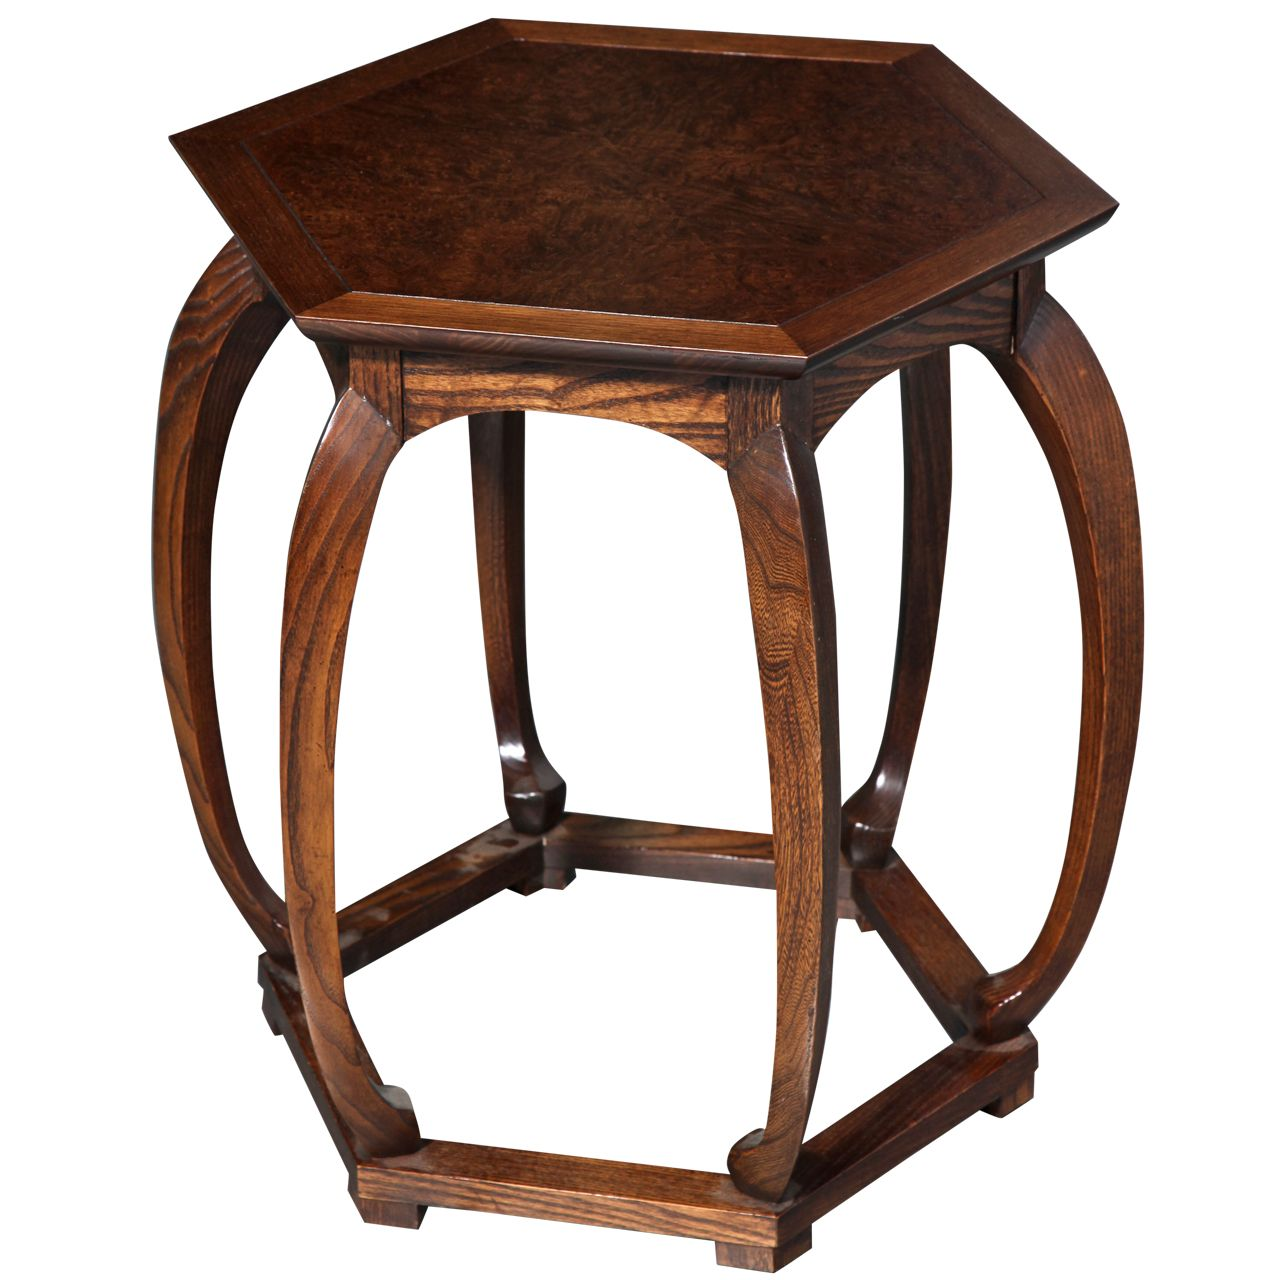 Cheap Discount Furniture Online: Baker Furniture Chinese-Style Hexagonal Table In 2019